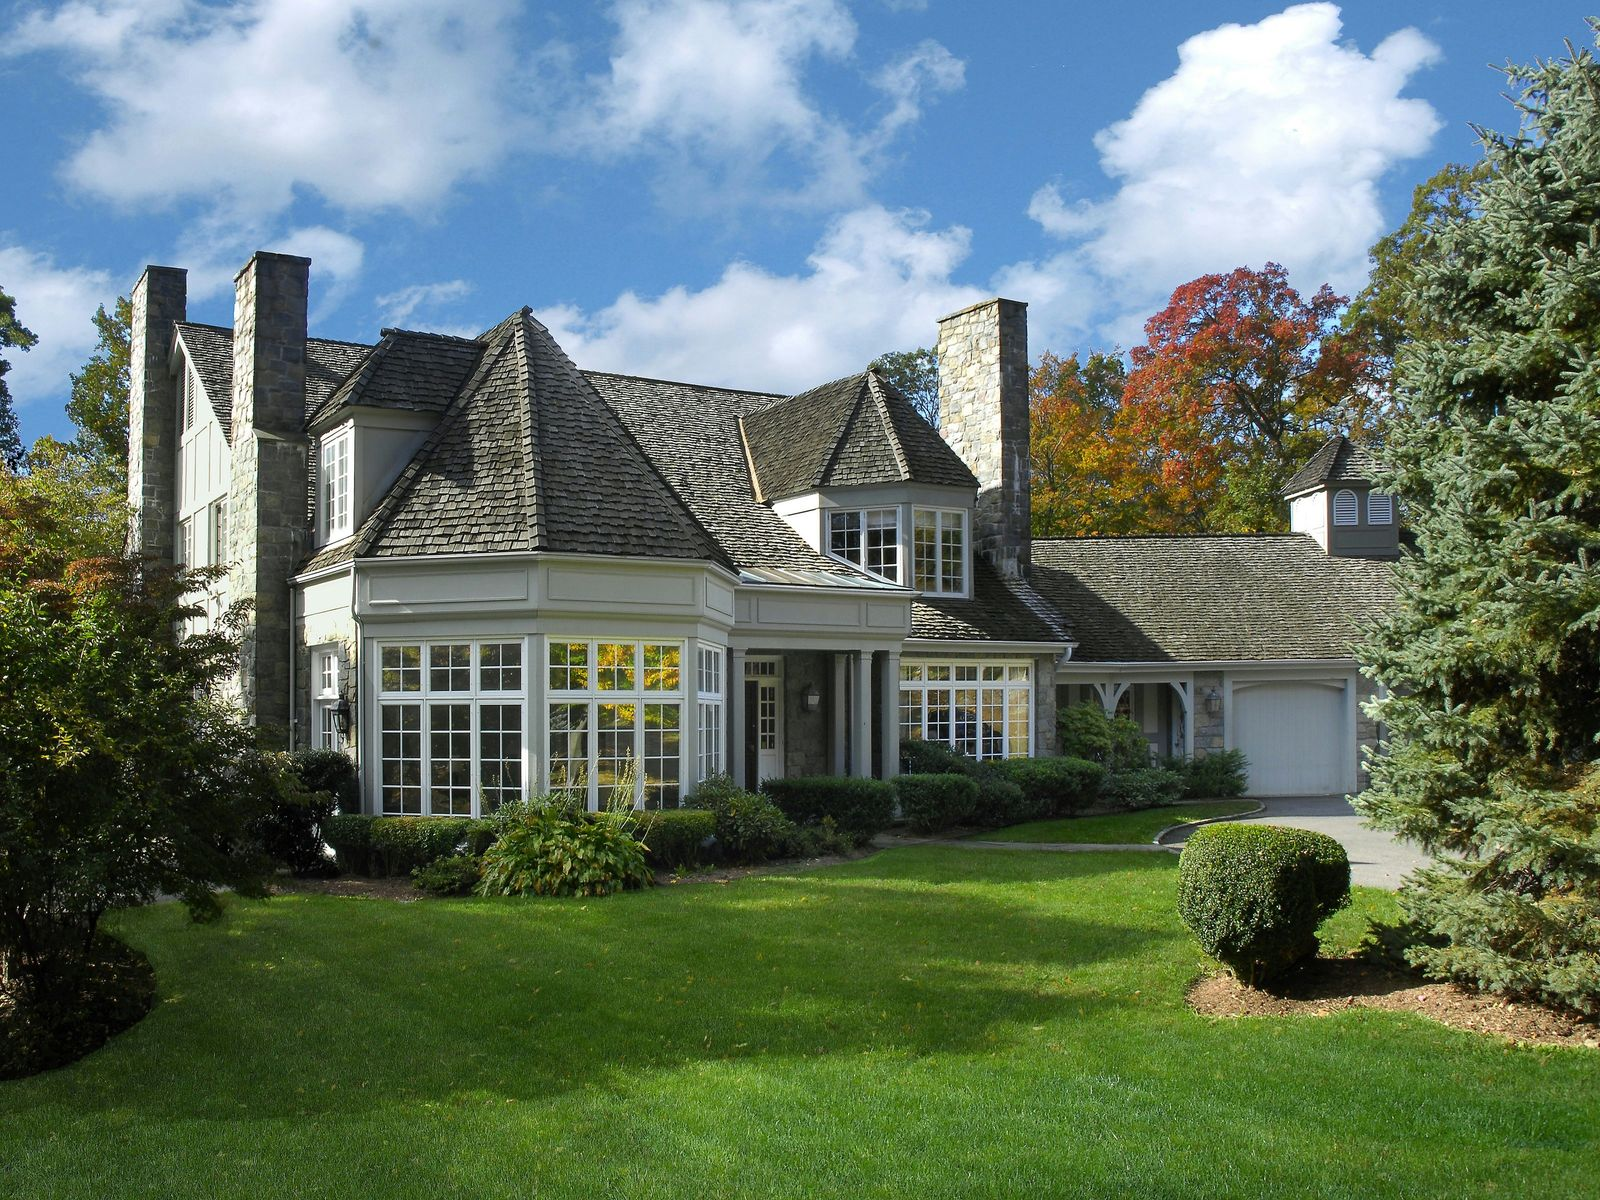 Country Privacy, Greenwich CT Single Family Home - Greenwich Real Estate